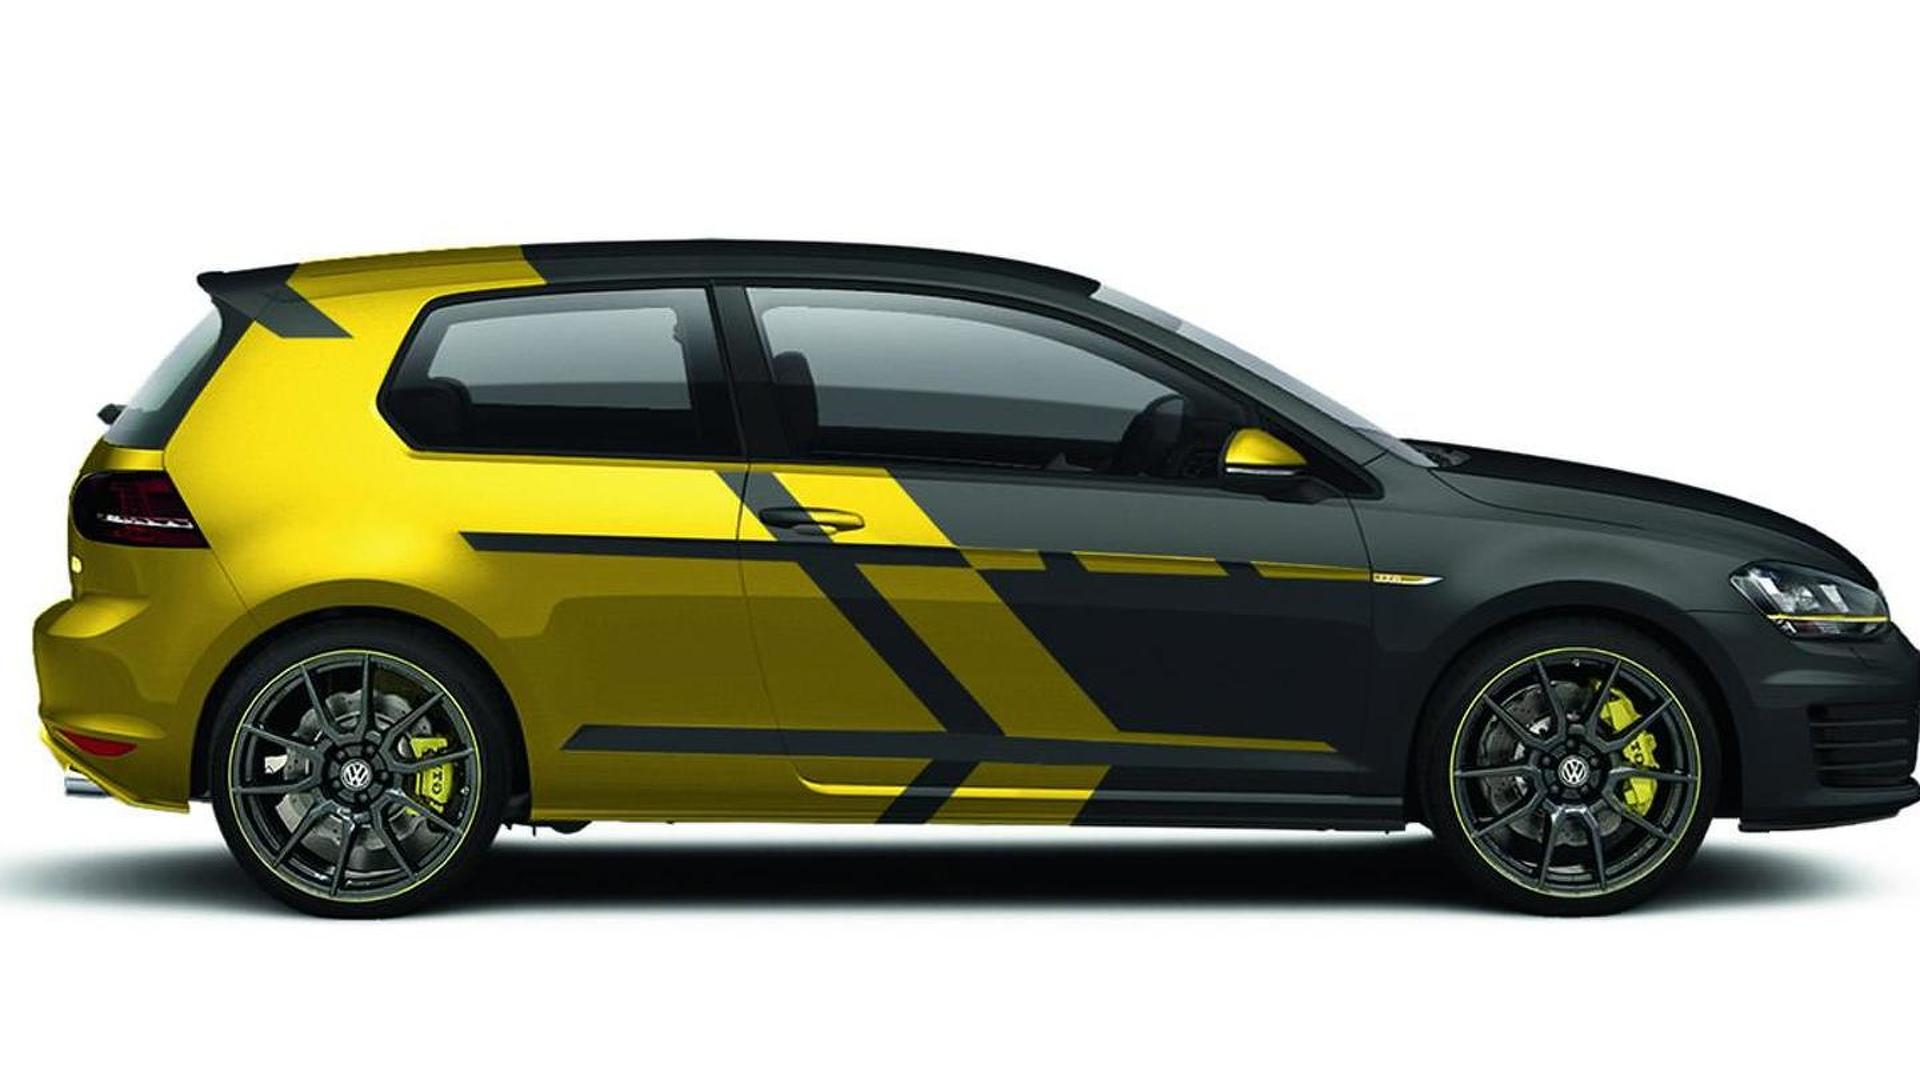 Volkswagen Golf GTI Performance one-off previewed ahead of Worthersee debut